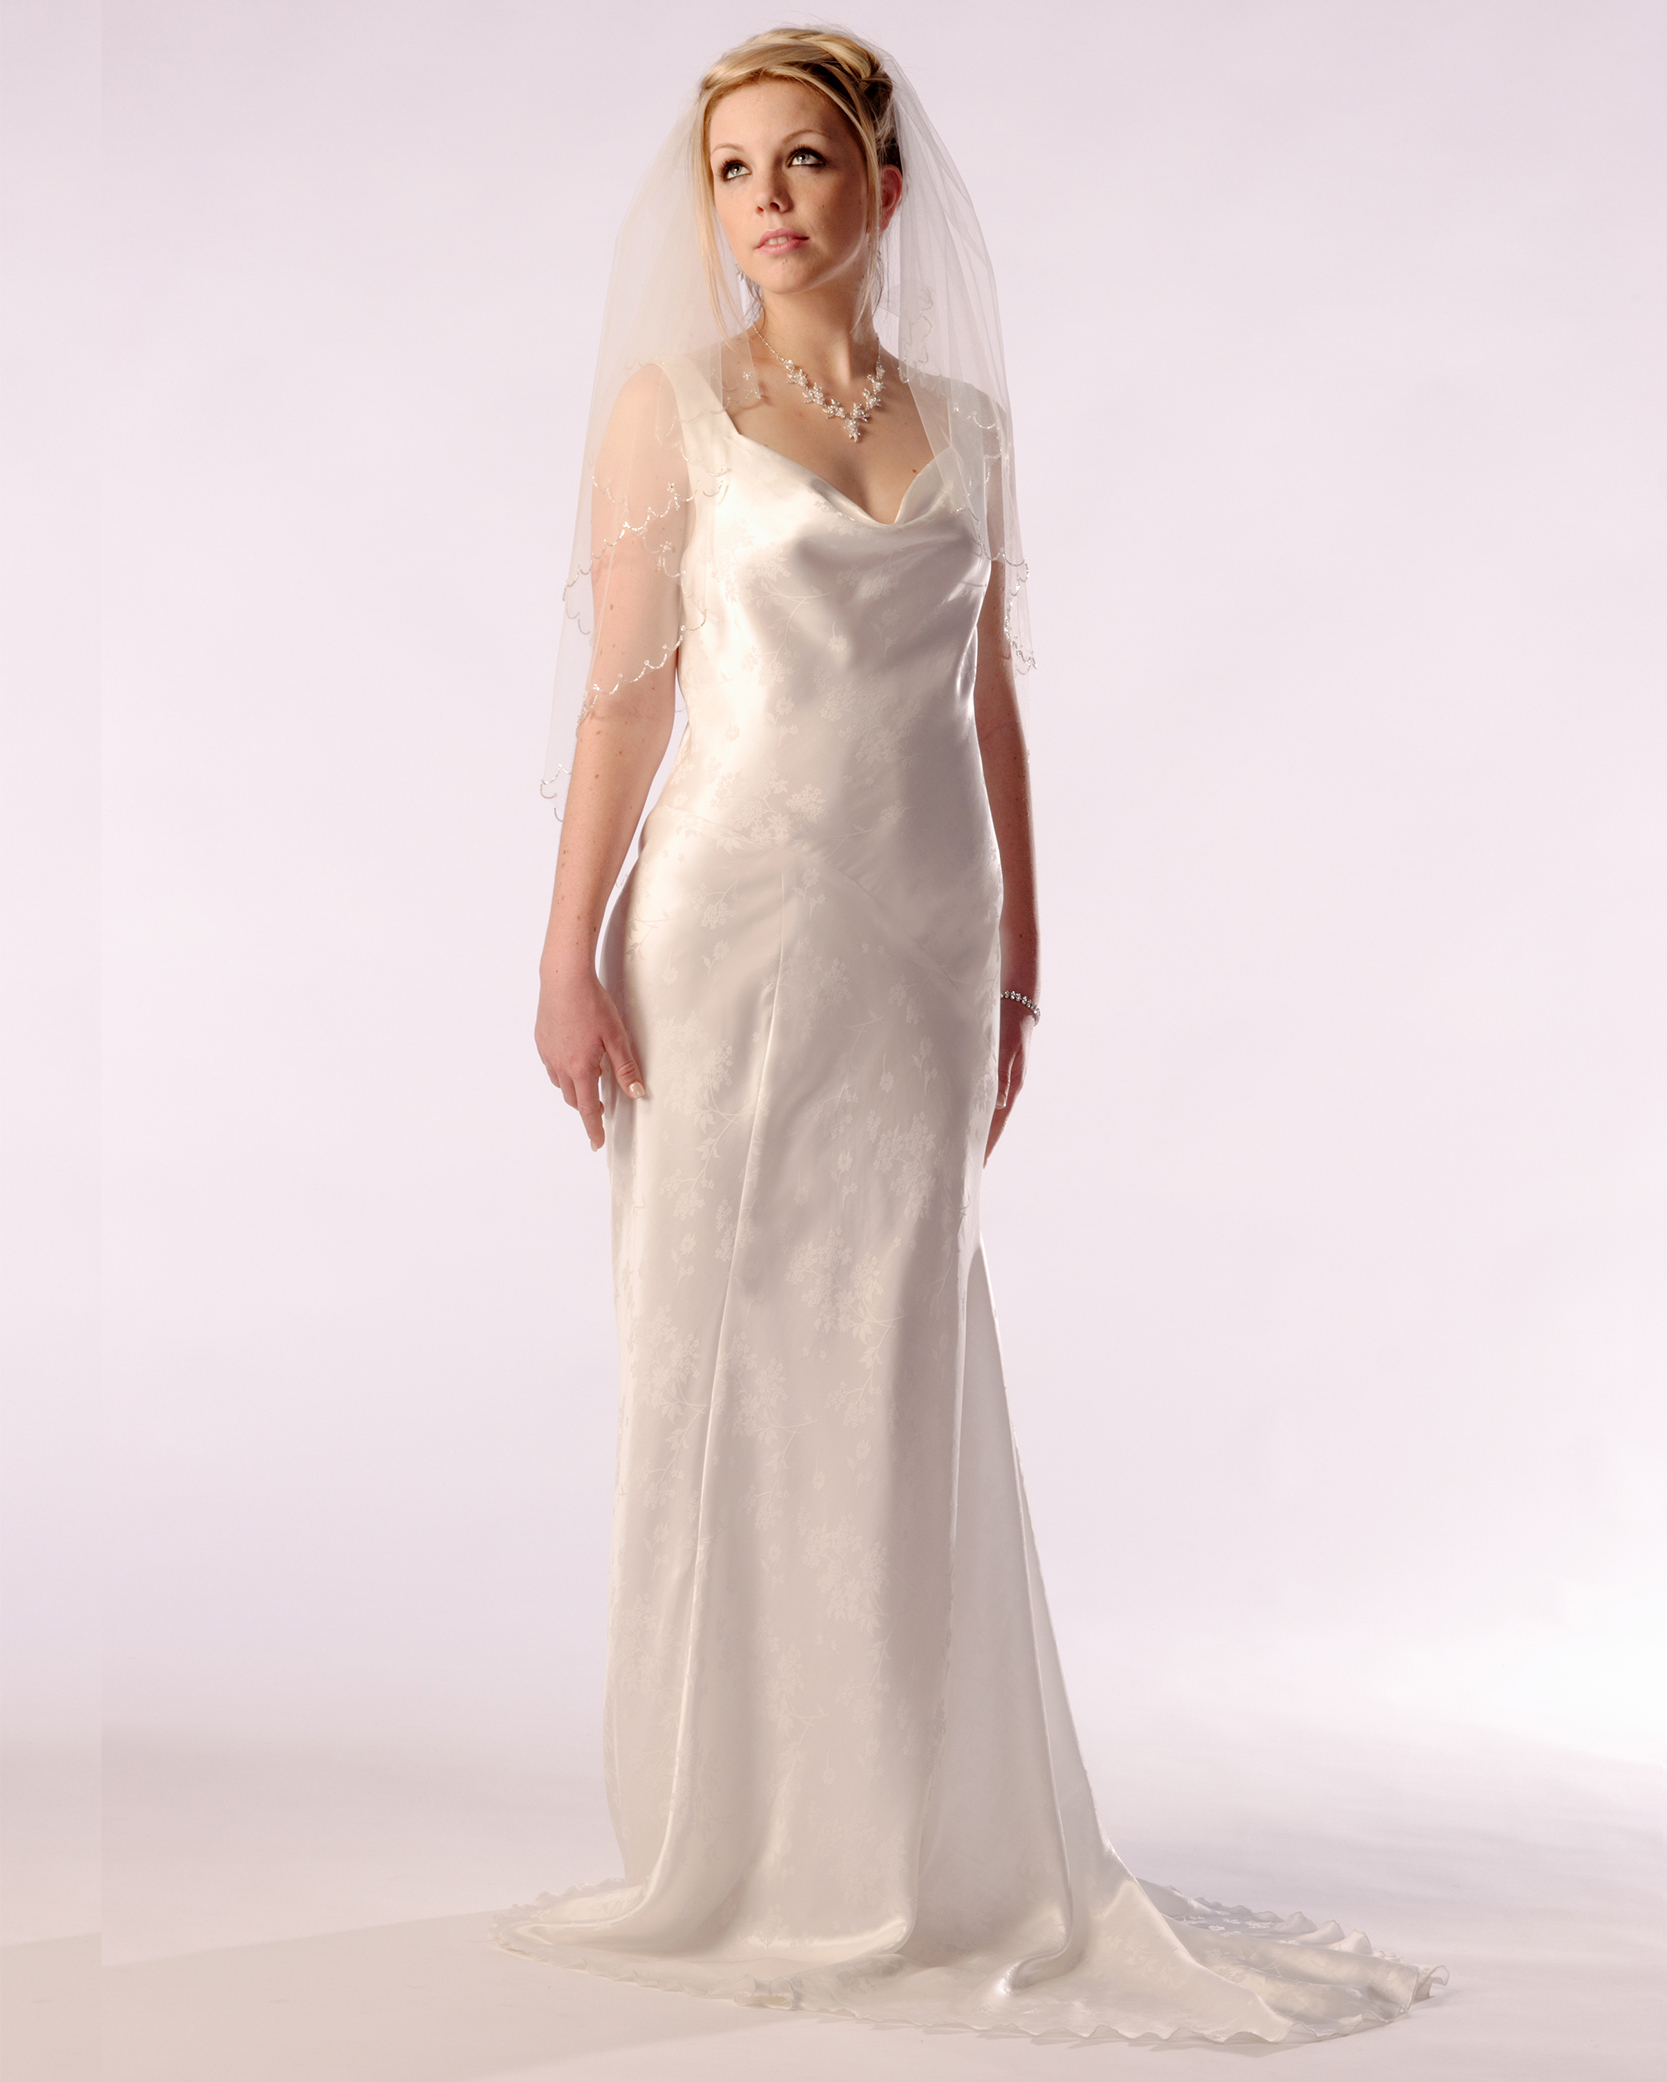 Cowl Neck Wedding Dresses Whimsical: Cowl Neck Bias Cut Bridal Gown